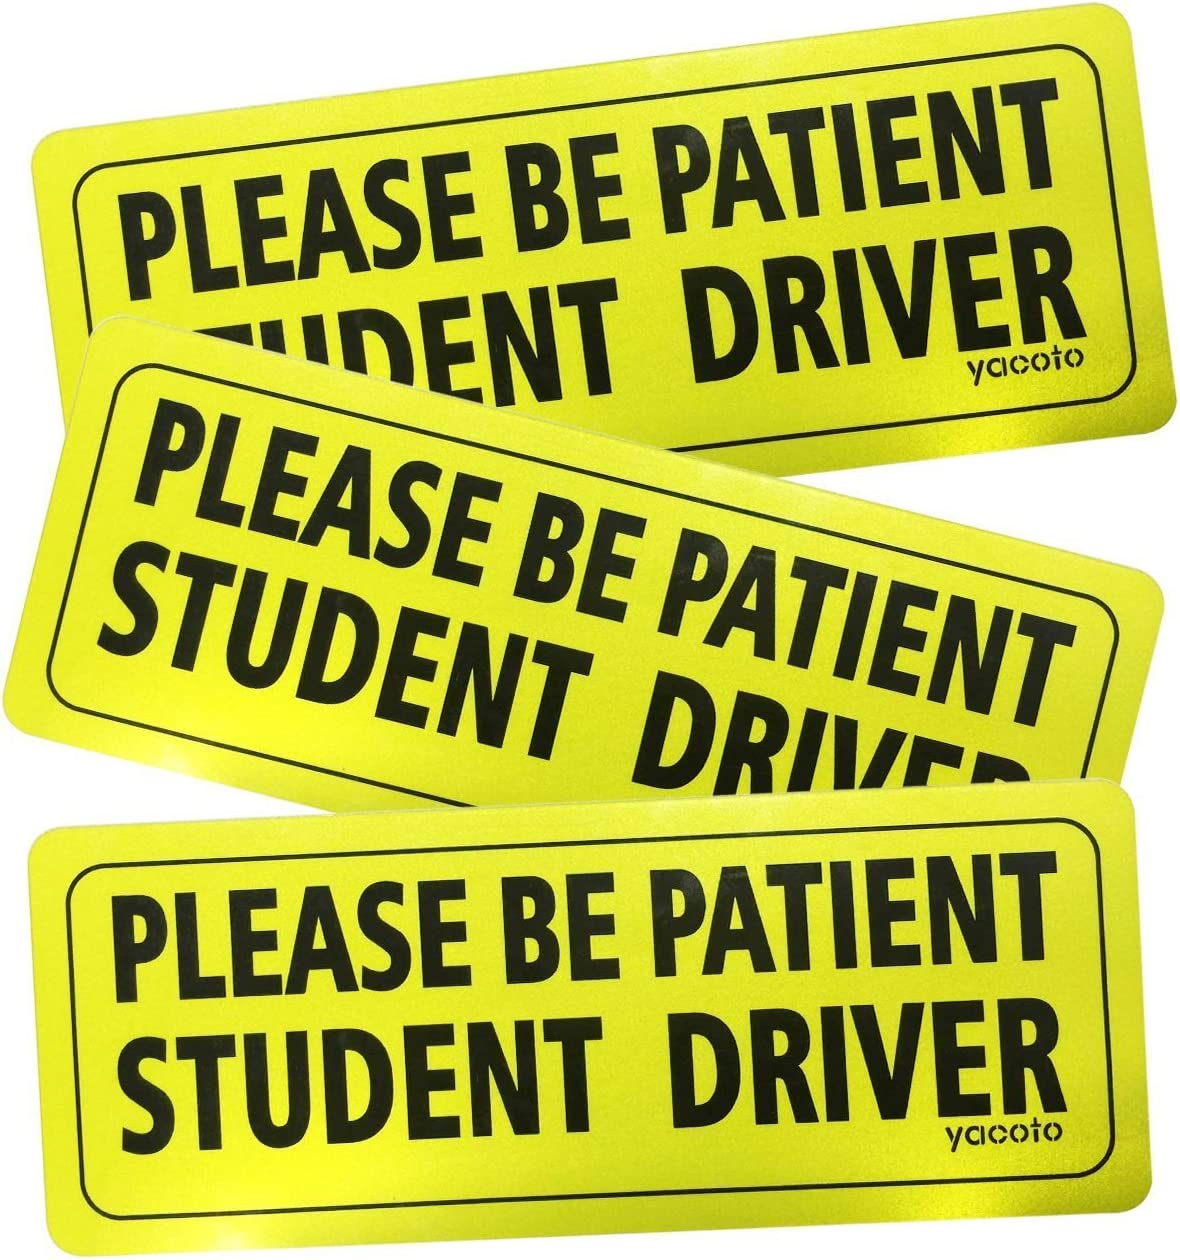 3x Student Driver Magnetic Reusable Safety Caution Bold Visible Text Car Signs